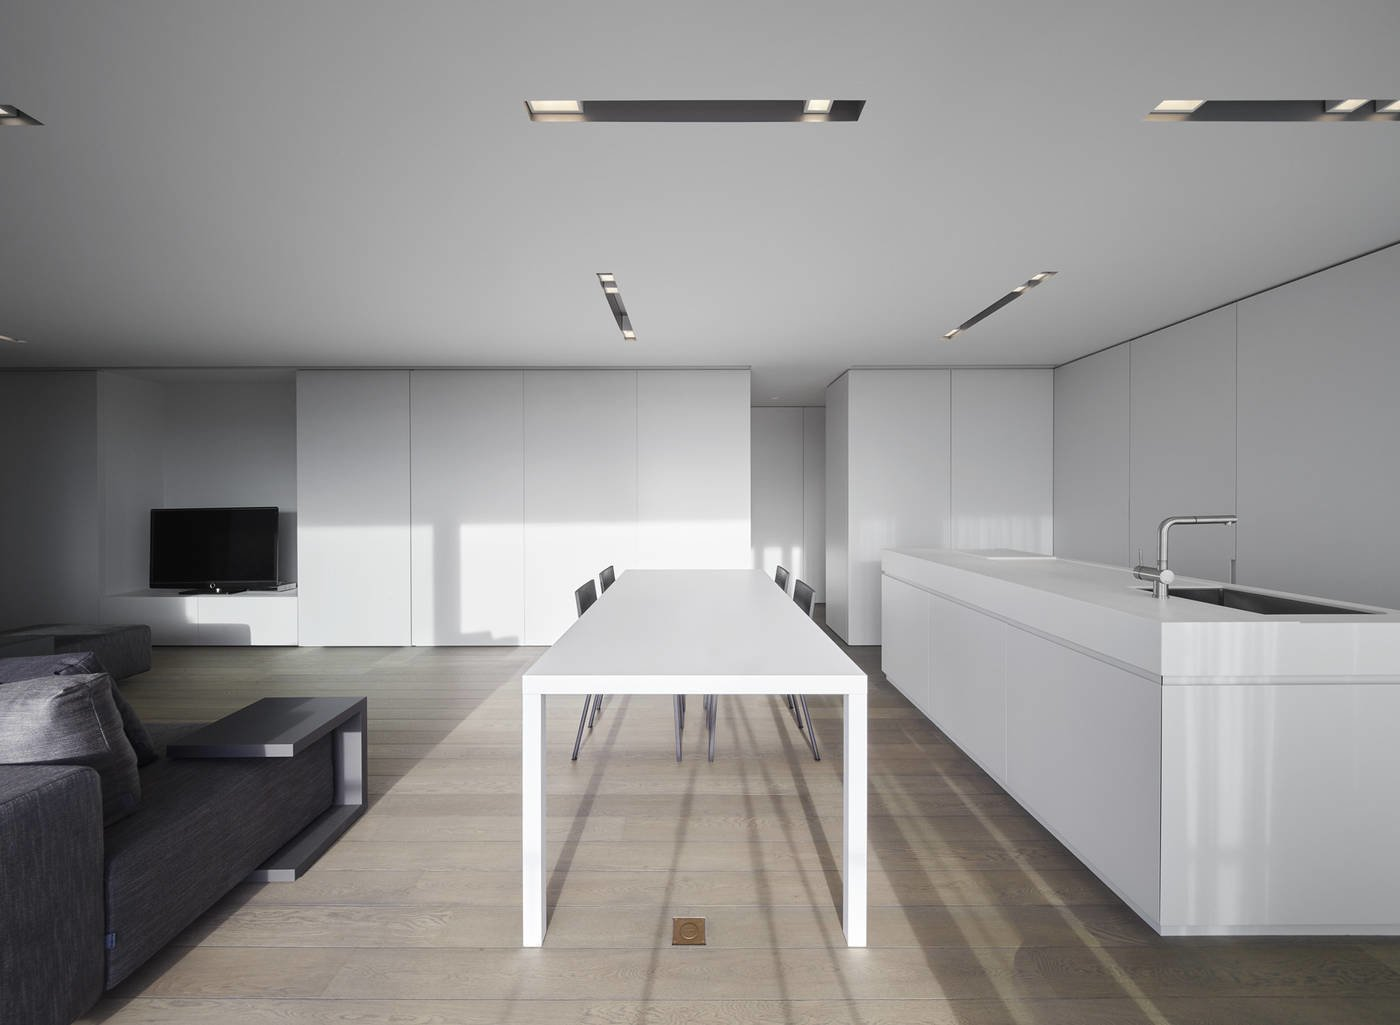 Dining Room, Ceiling Lighting, Recessed Lighting, Table, Light Hardwood Floor, and Chair  Photo 7 of 11 in 10 Minimalist and Monochromatic Homes in Belgium from Oostduinkerke by minus